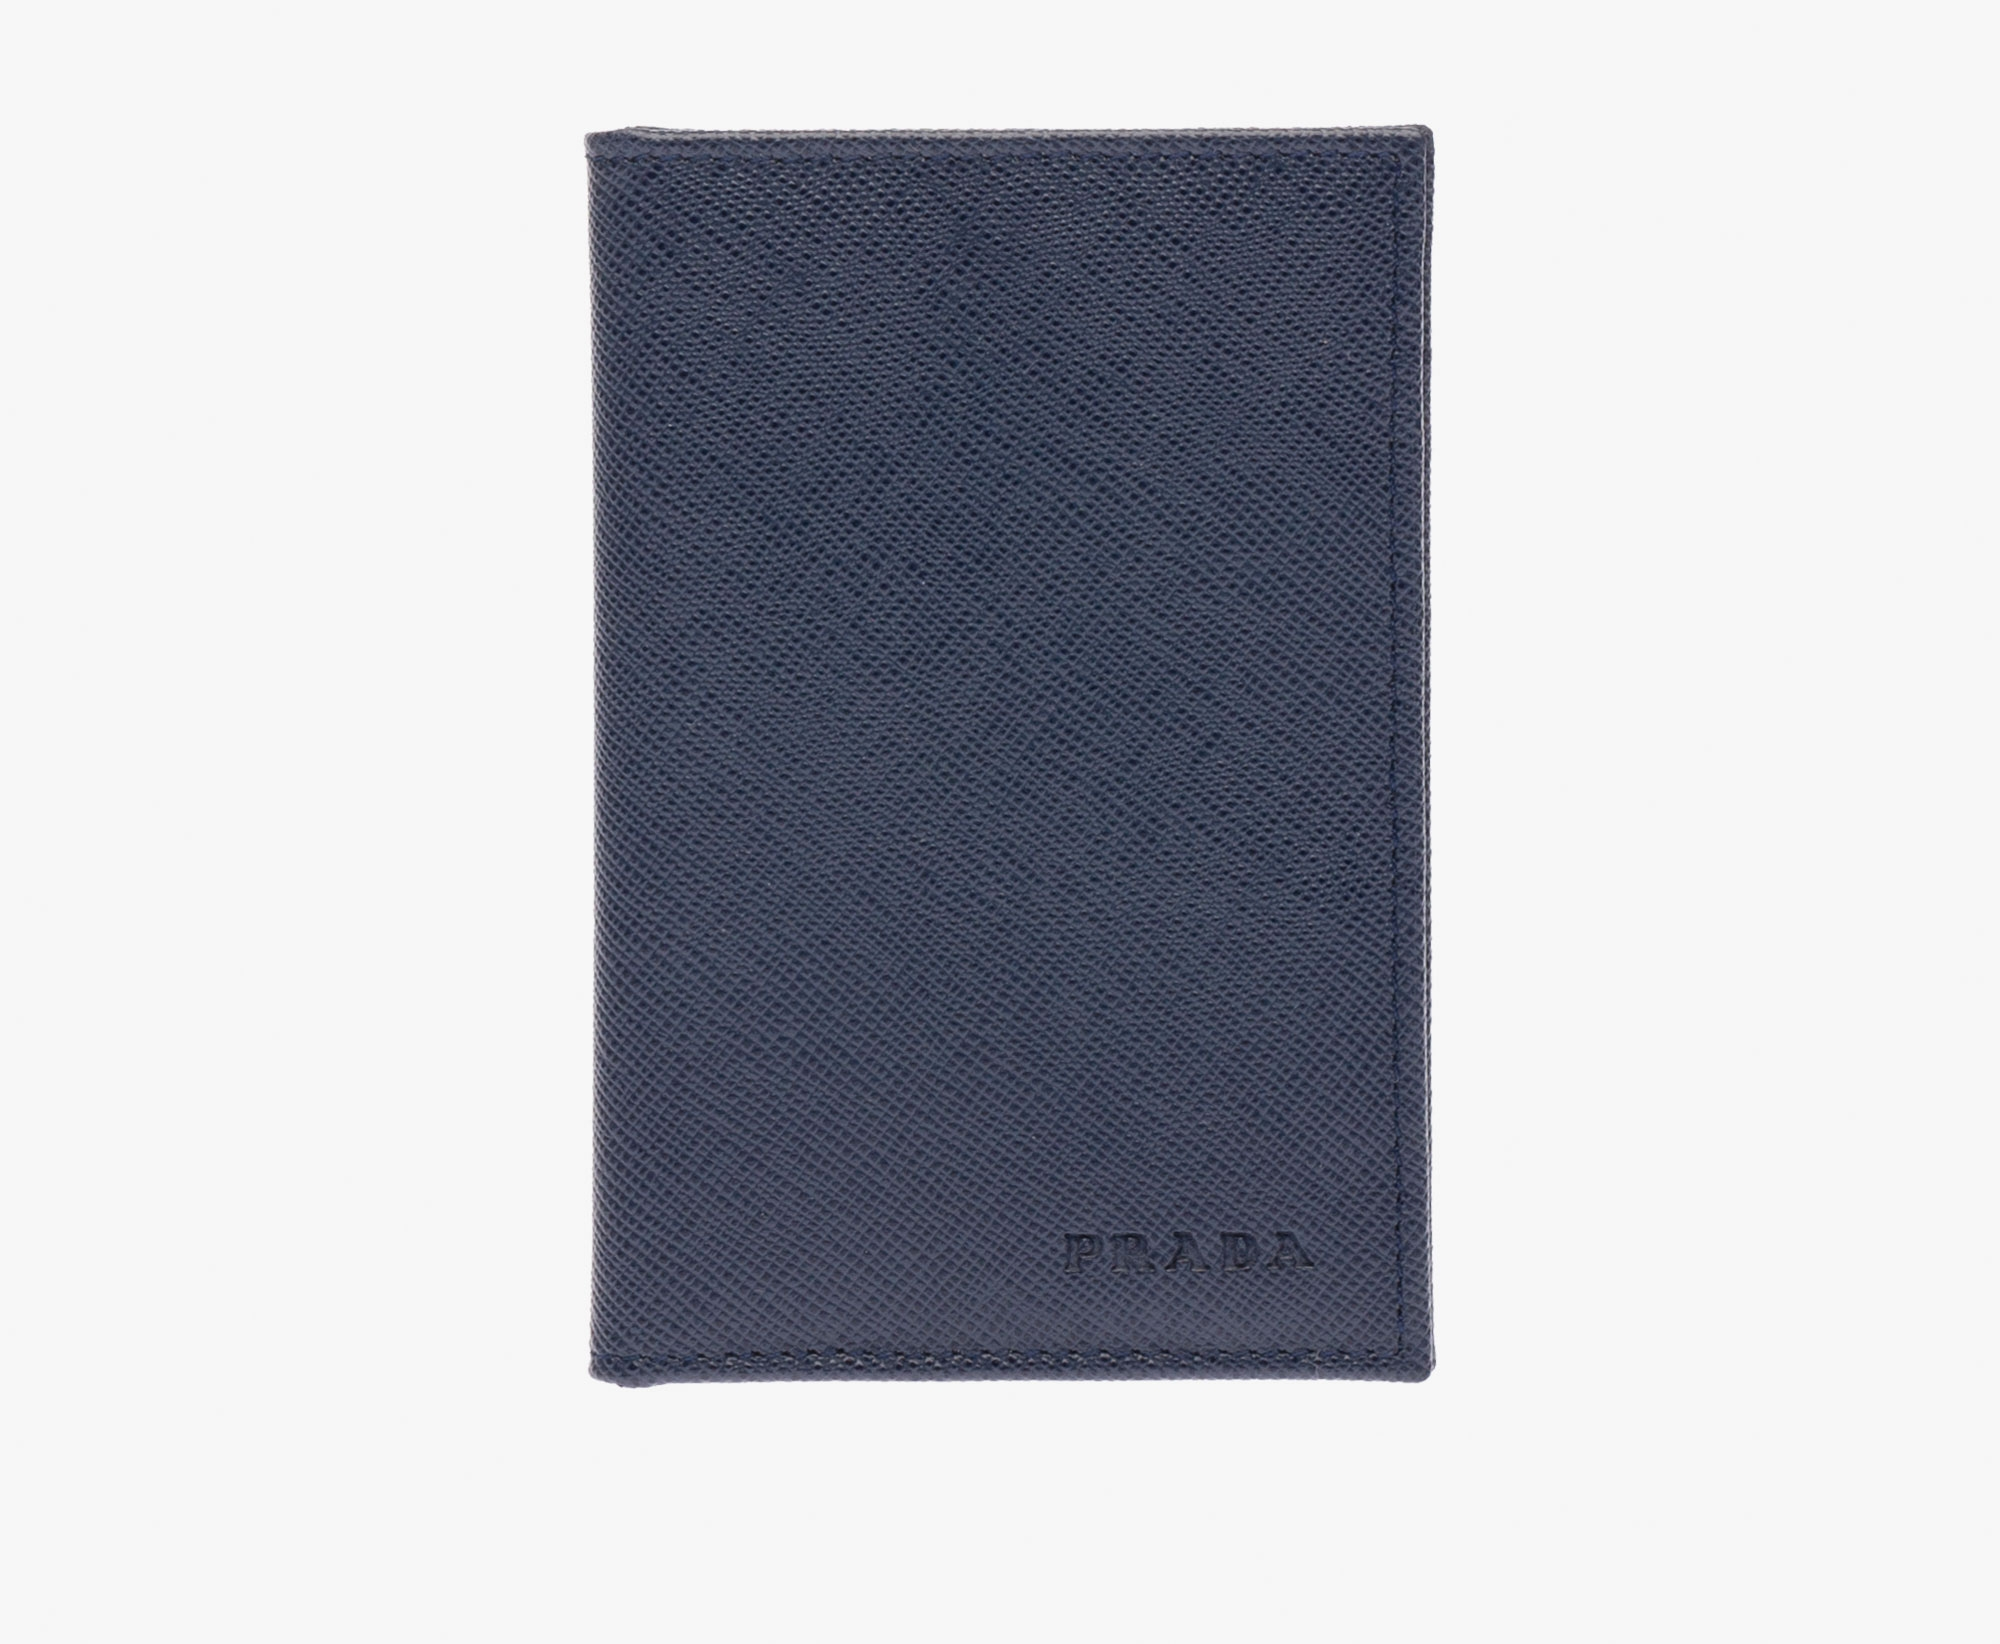 Buy Prada Men Wallet Baltic Blue [2MC101 053 F0216], Price ... - prada wallet baltic blue